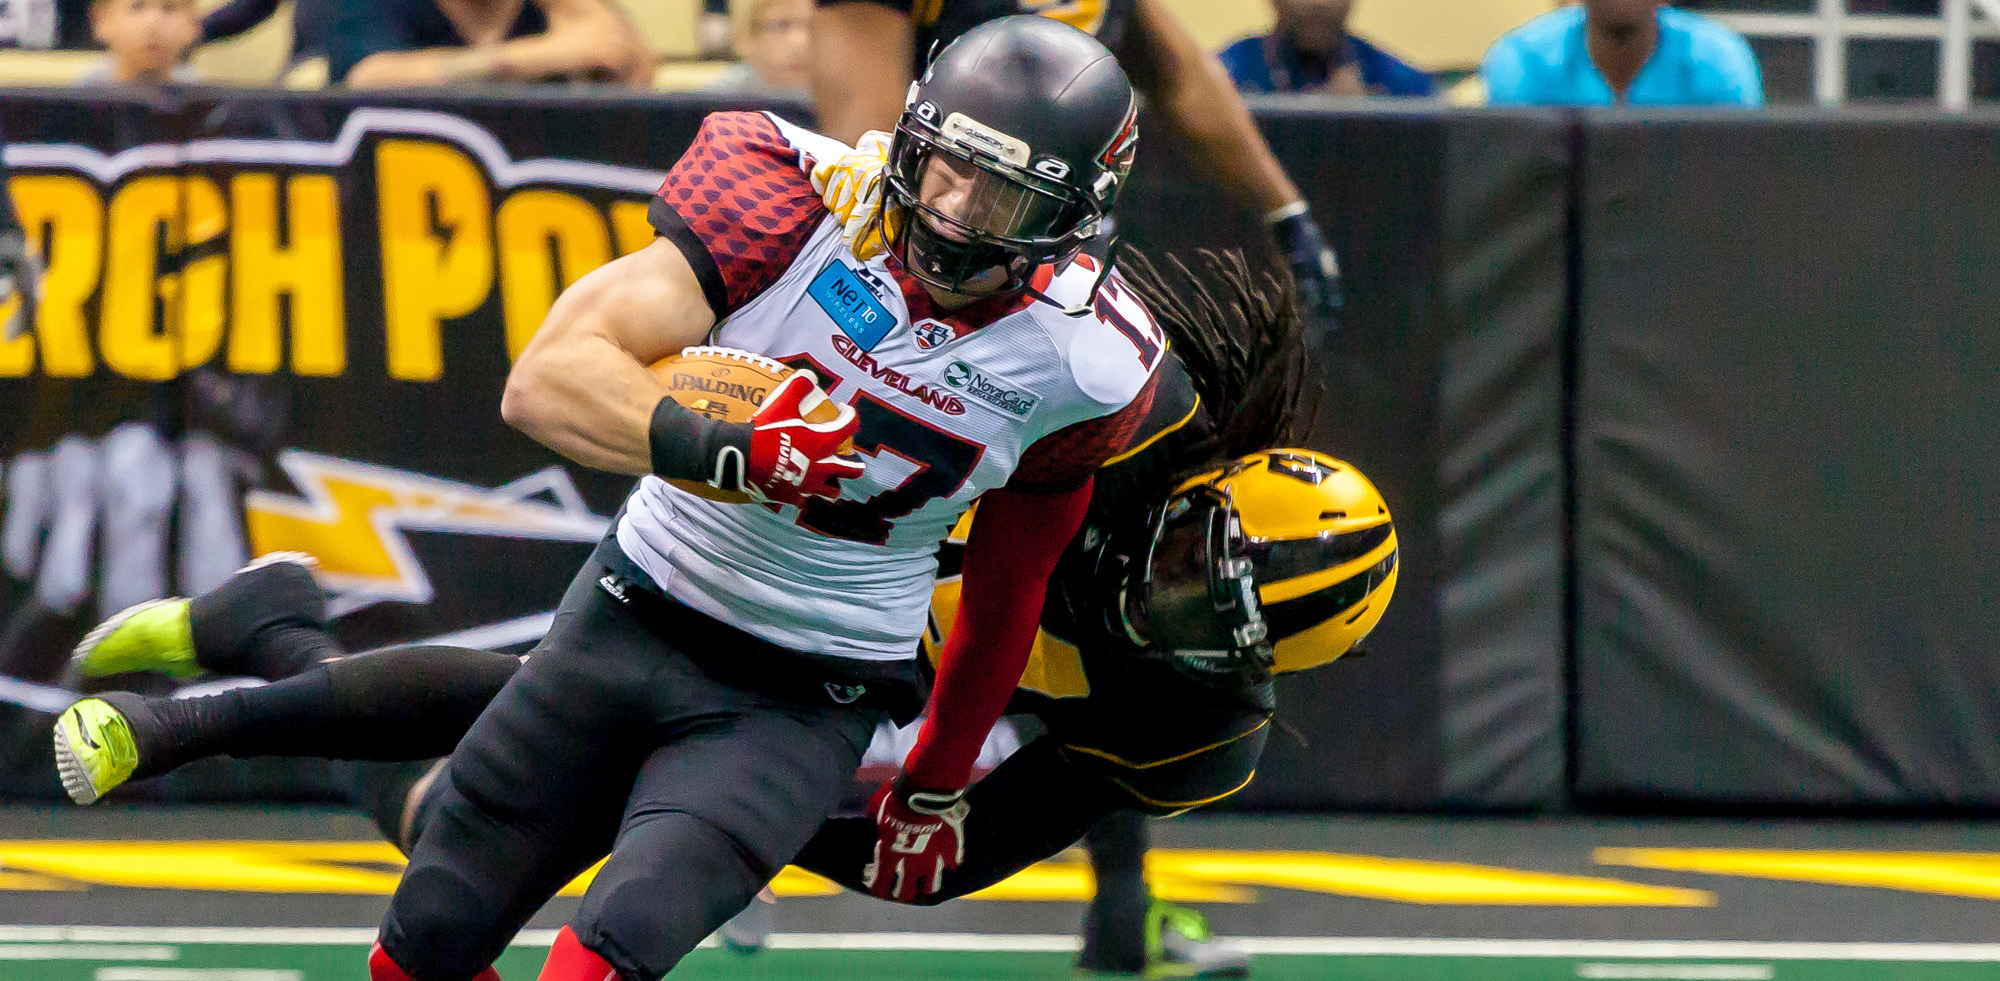 Collin Taylor, a Carmel grad, now plays for the Arena Football League. (Submitted photo)